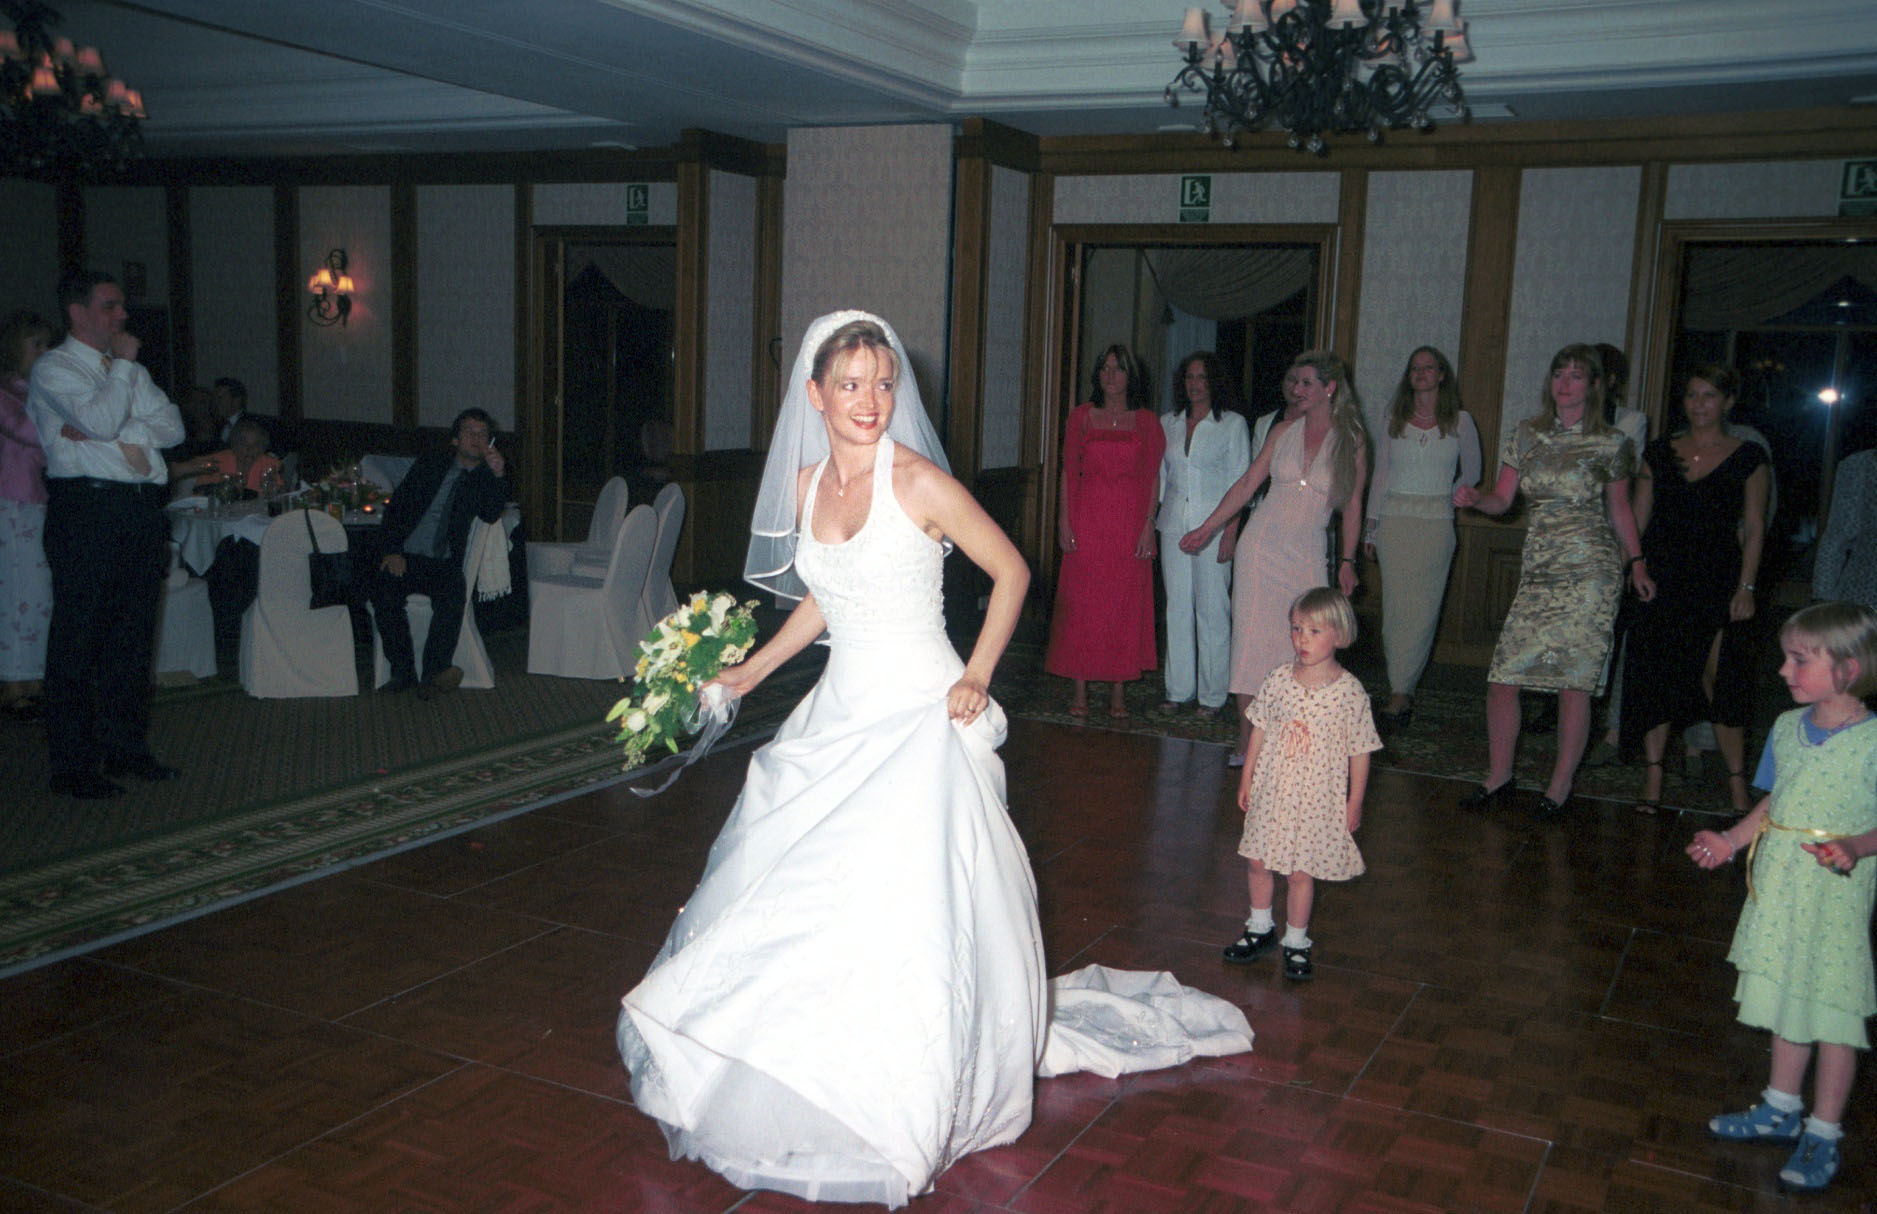 Curious Questions: Why do brides throw their bouquets? And wear white? And wear something old, new, borrowed and blue? - Country Life